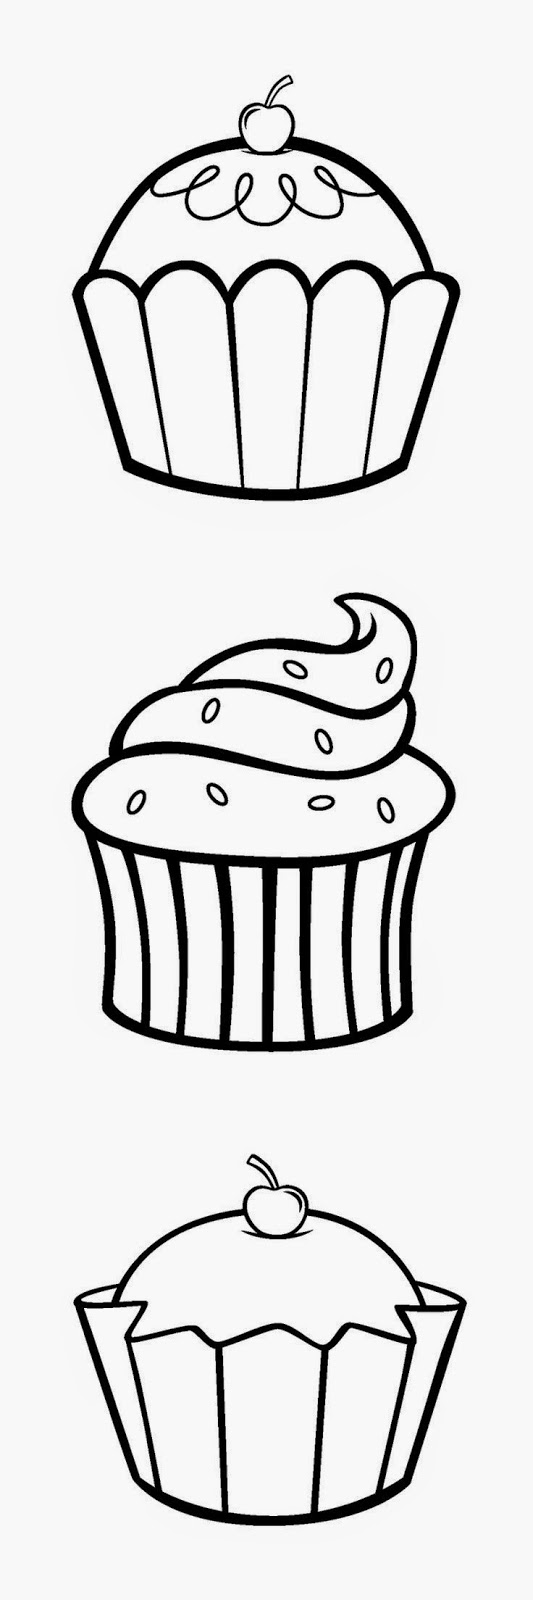 cupcakes coloring pages geography blog cupcake coloring pages coloring pages cupcakes